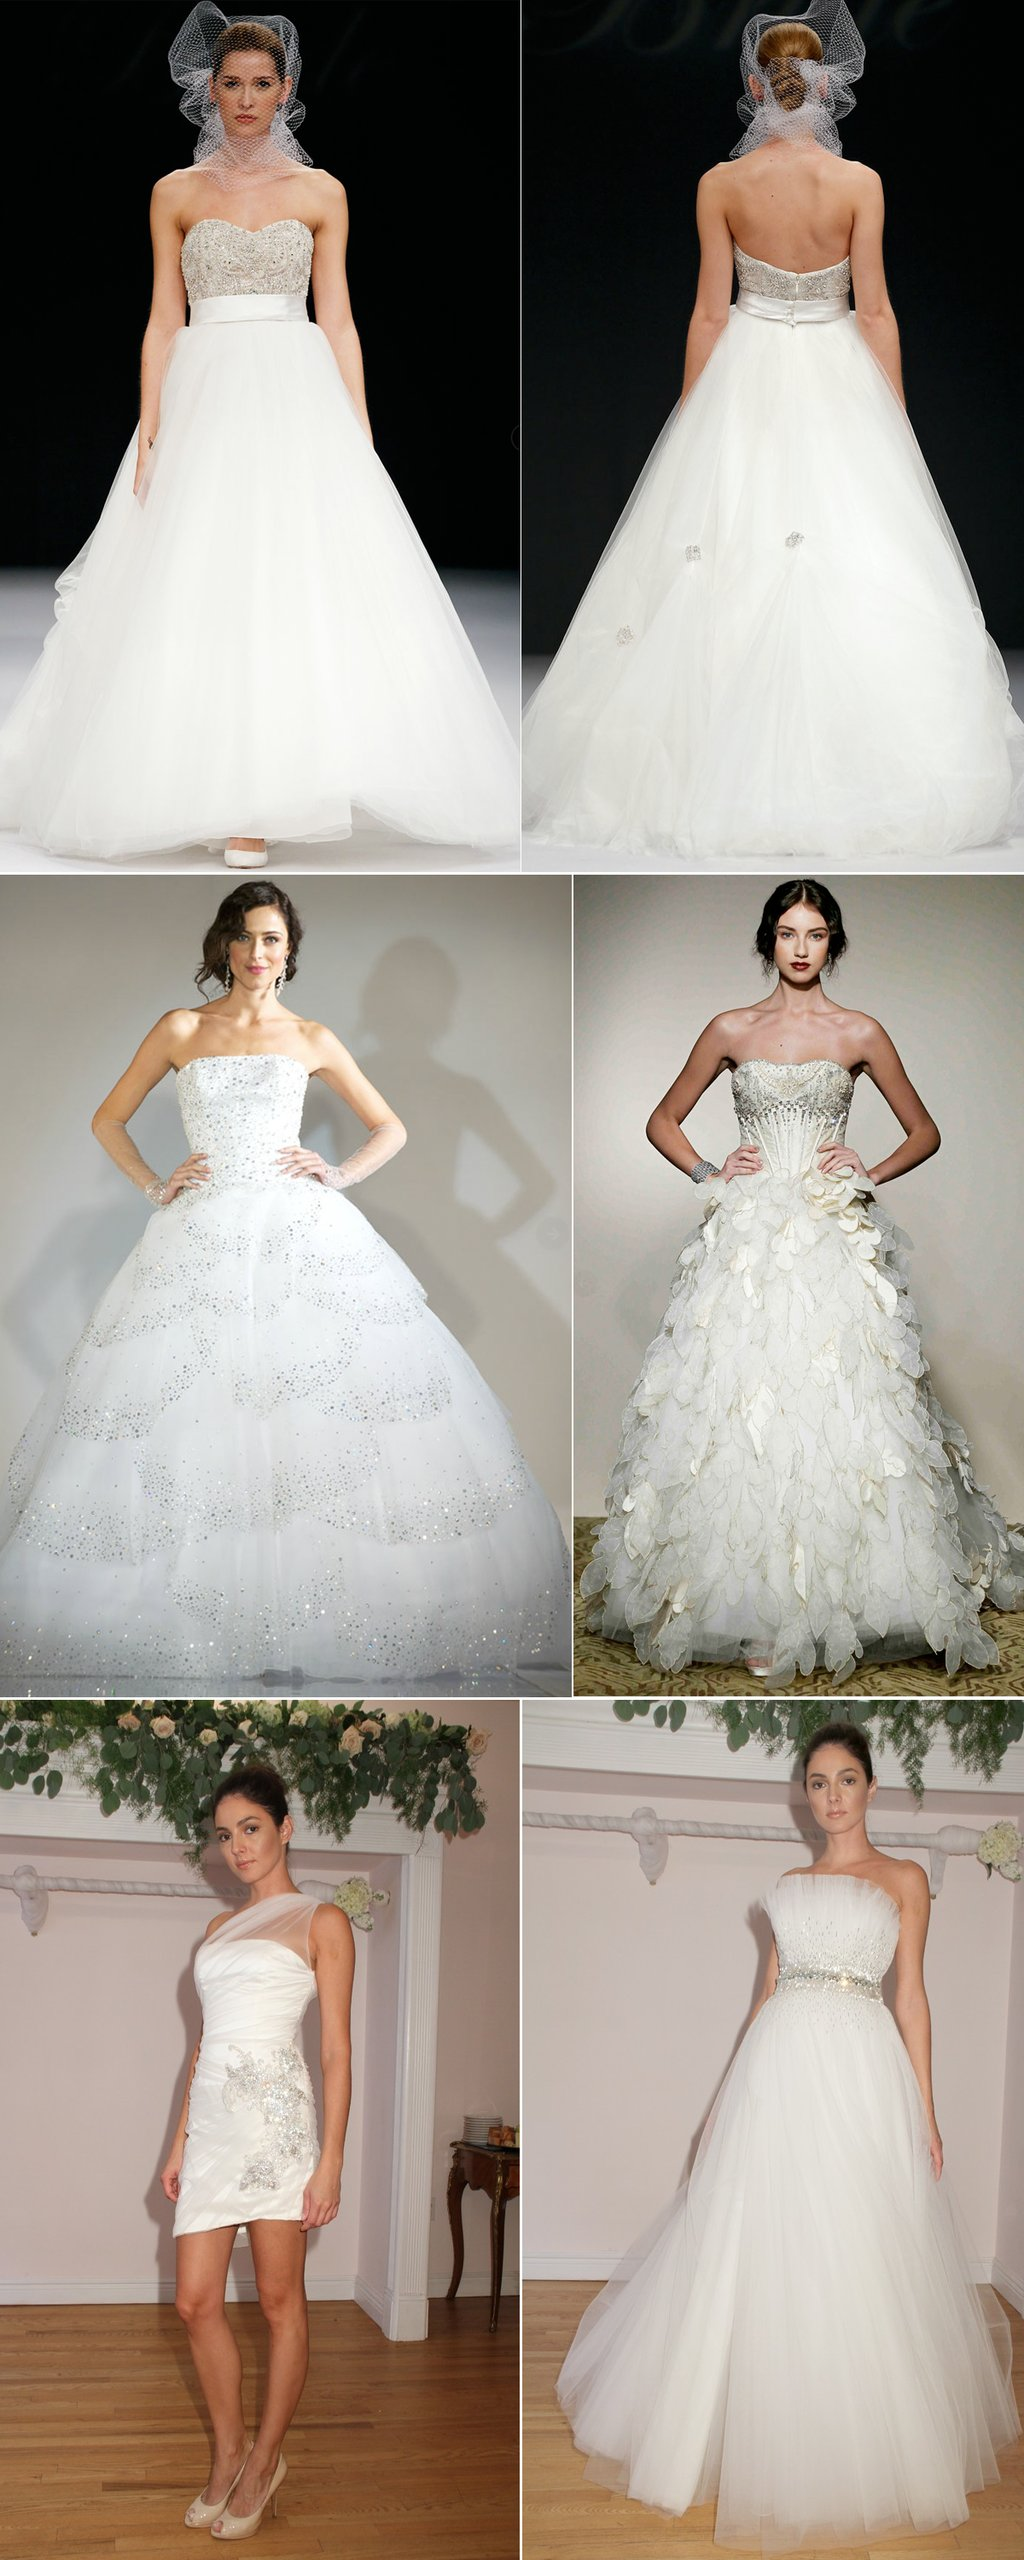 Bejewled-wedding-dresses-2012-bridal-gown-beaded.full